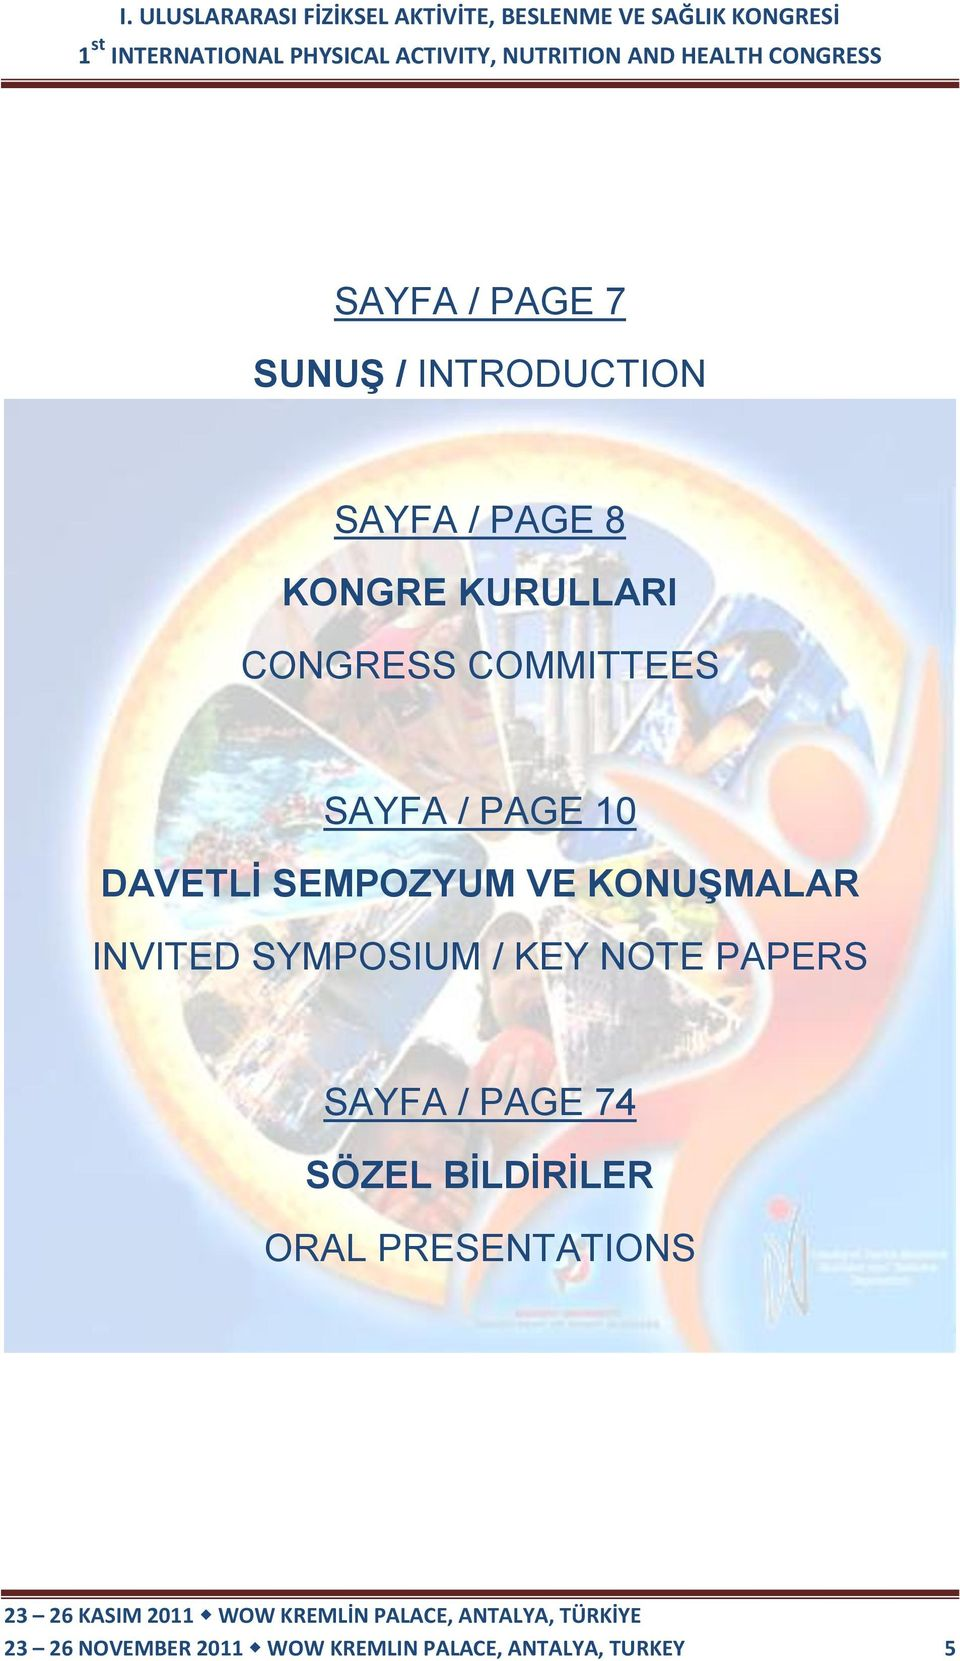 INVITED SYMPOSIUM / KEY NOTE PAPERS SAYFA / PAGE 74 SÖZEL BİLDİRİLER